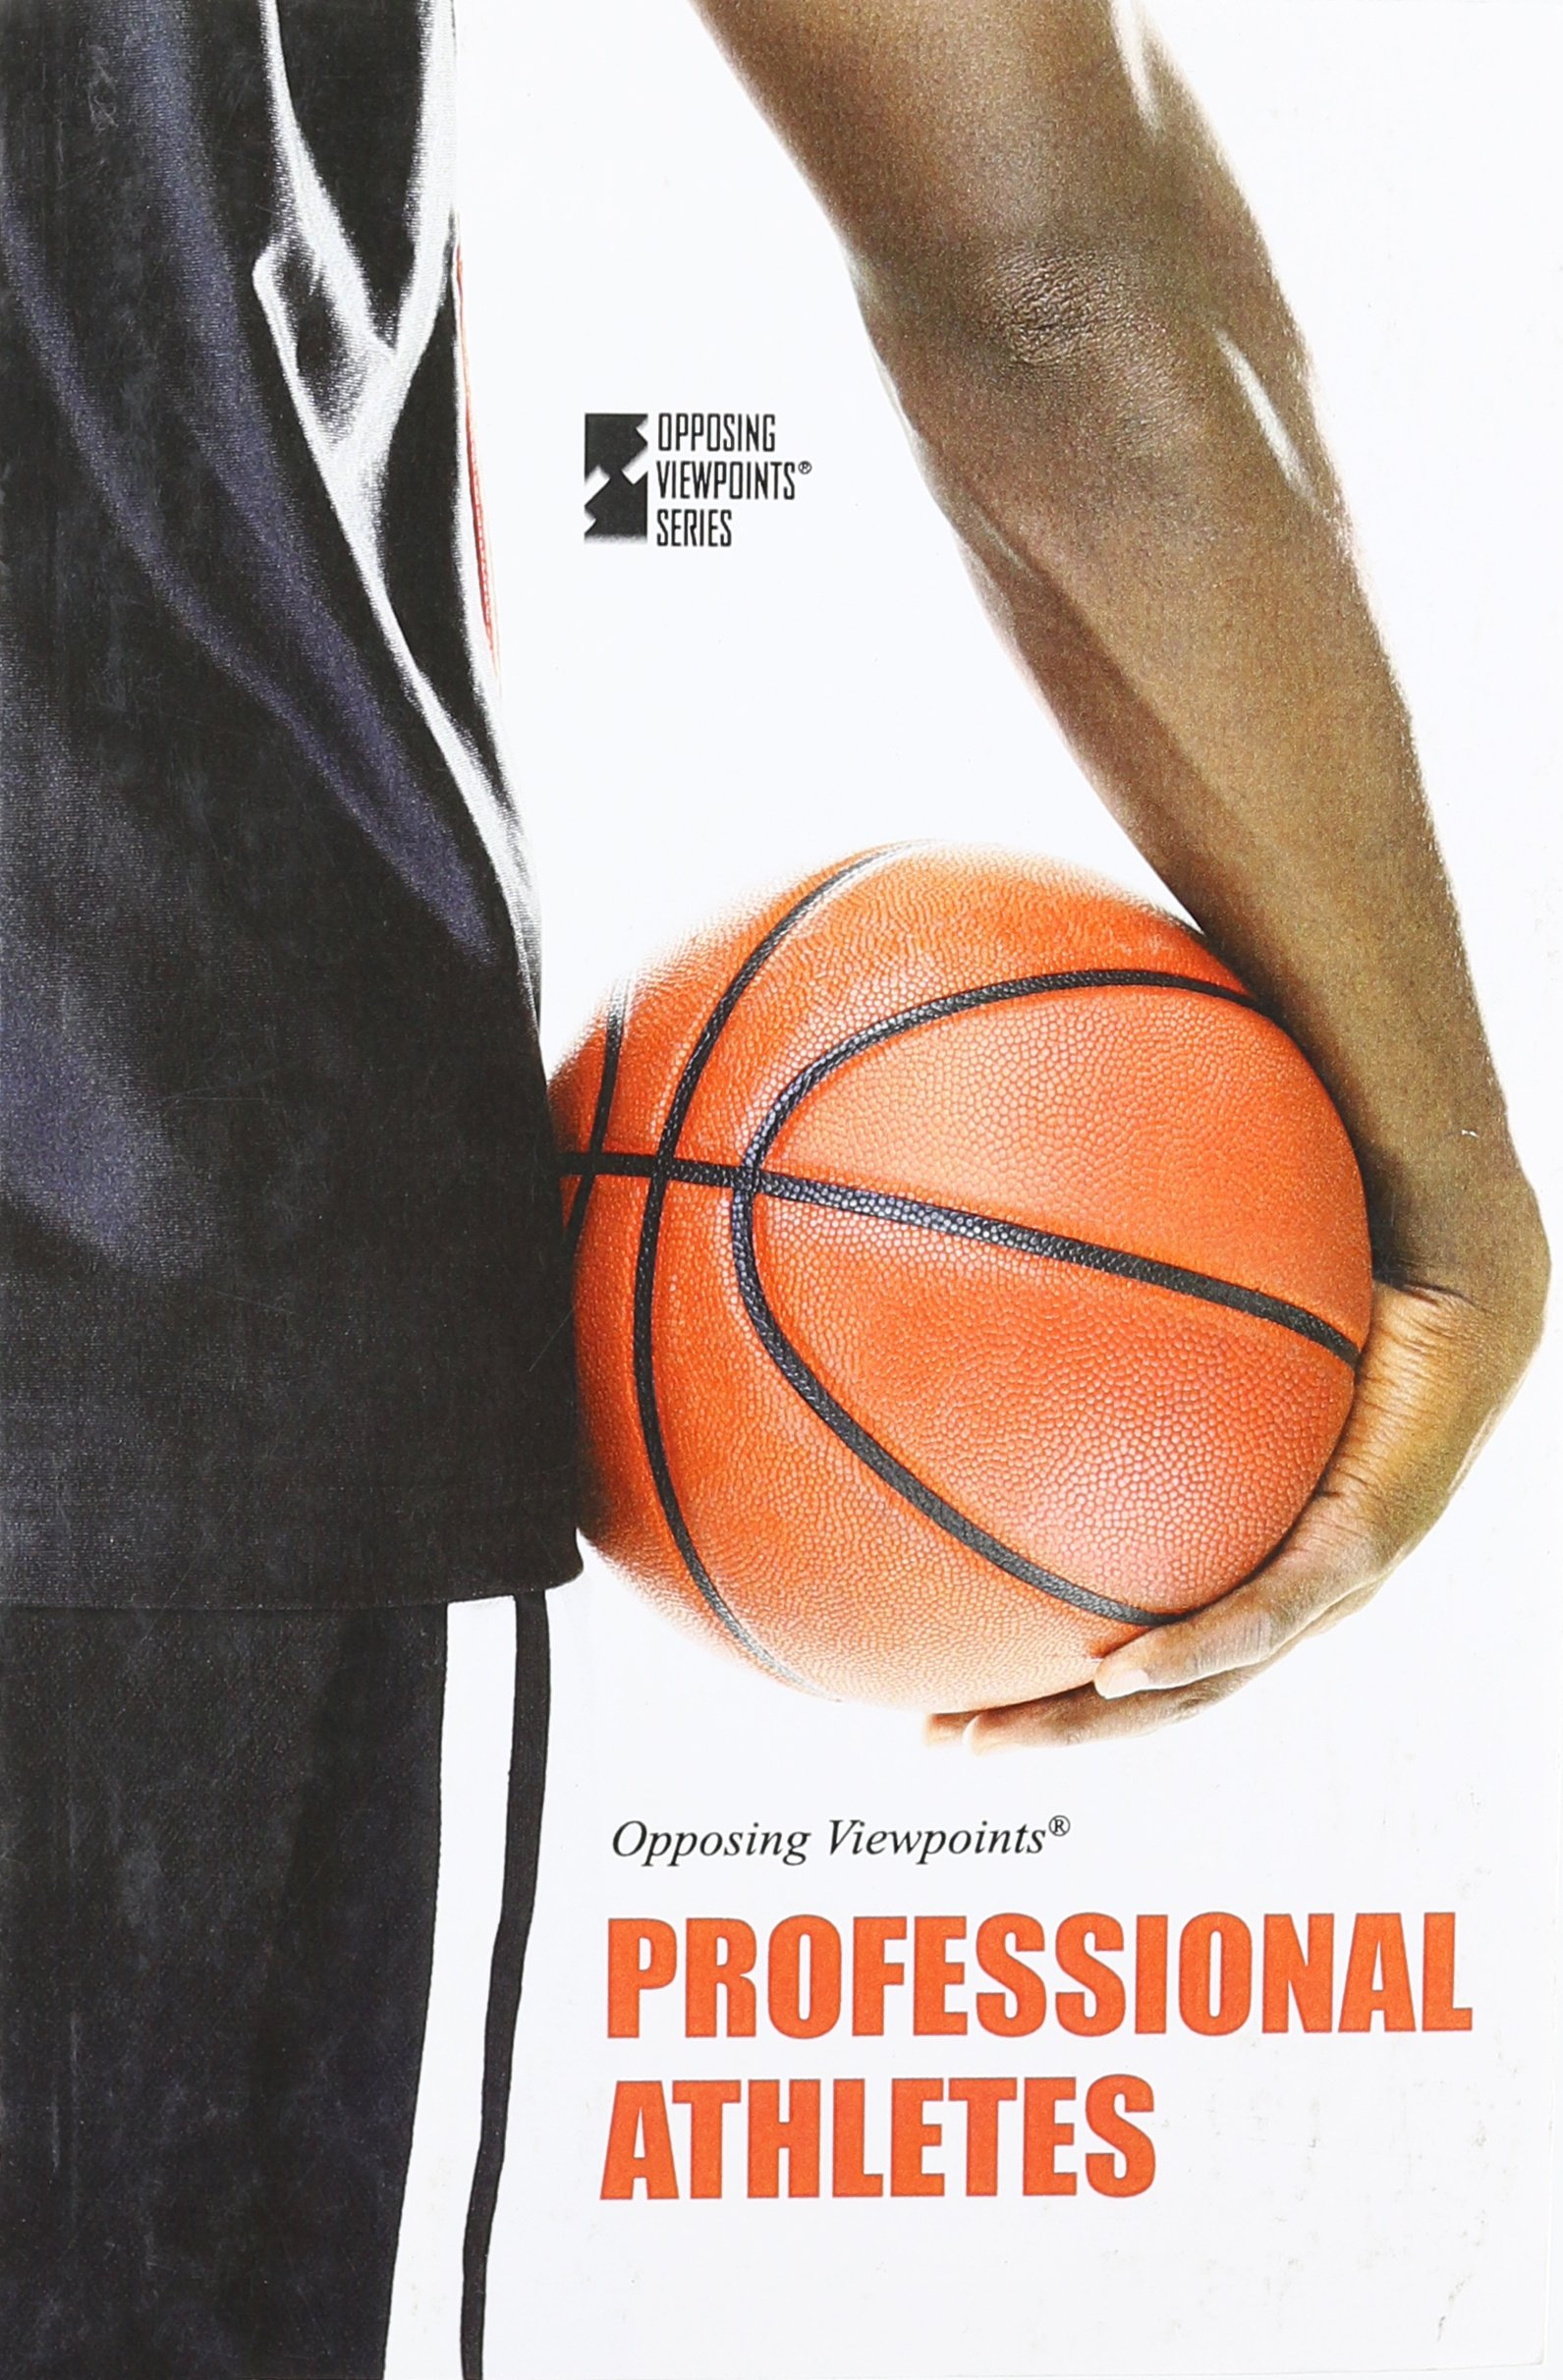 Professional Athletes (Opposing Viewpoints) pdf